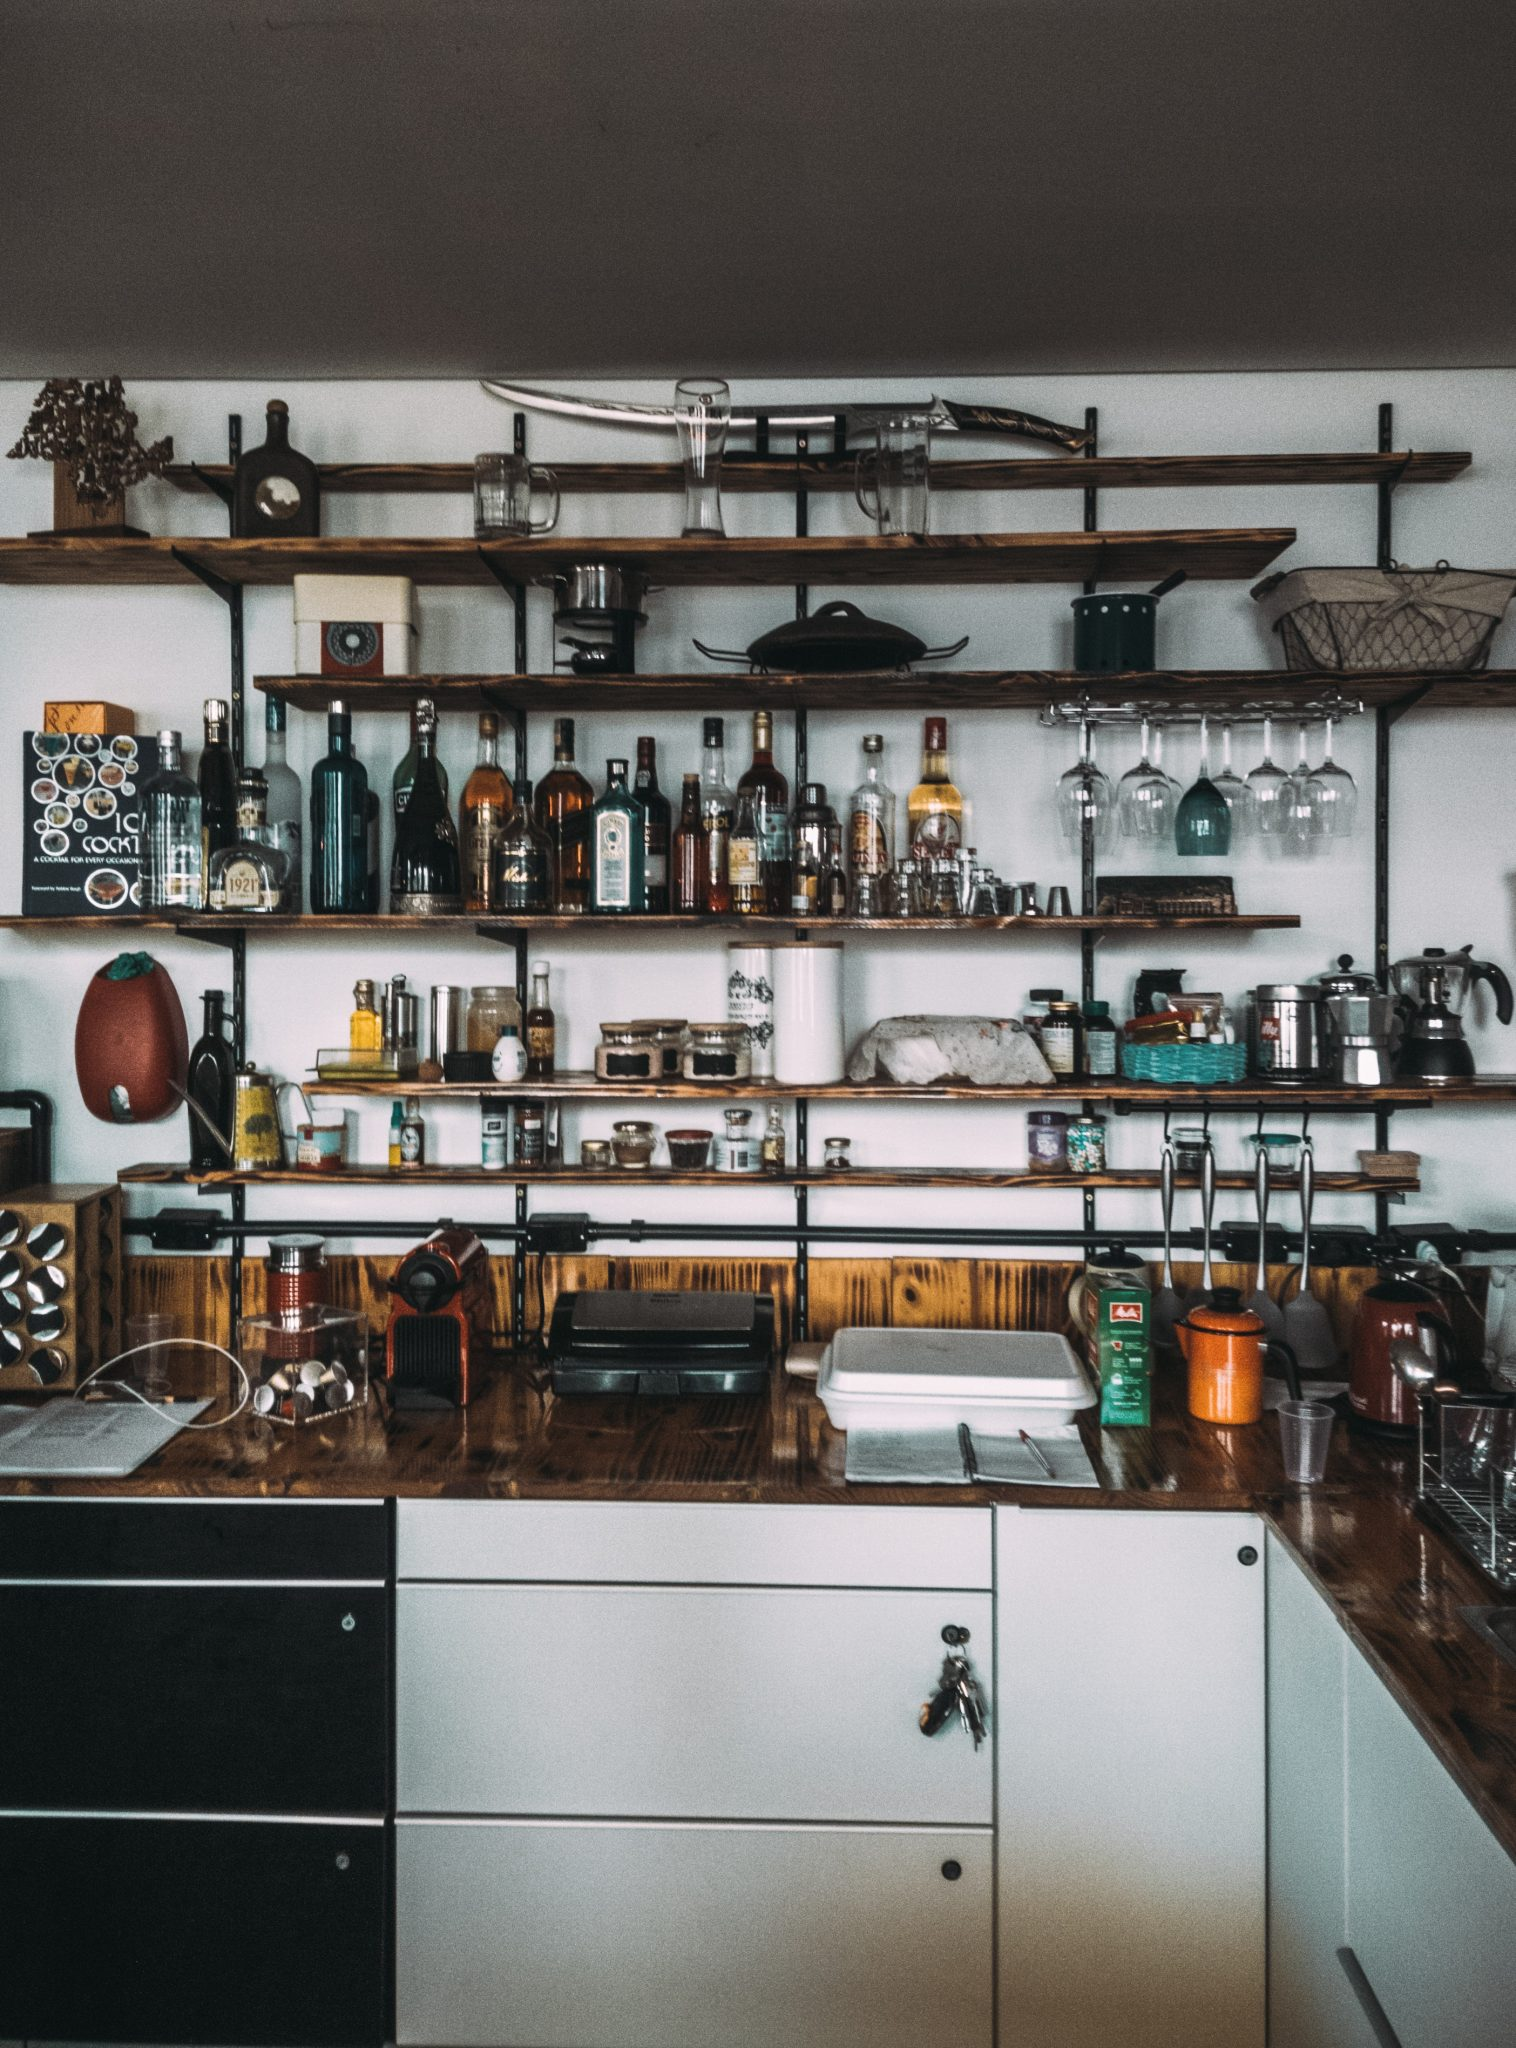 How to make the bar in your house look cooler using recycled material